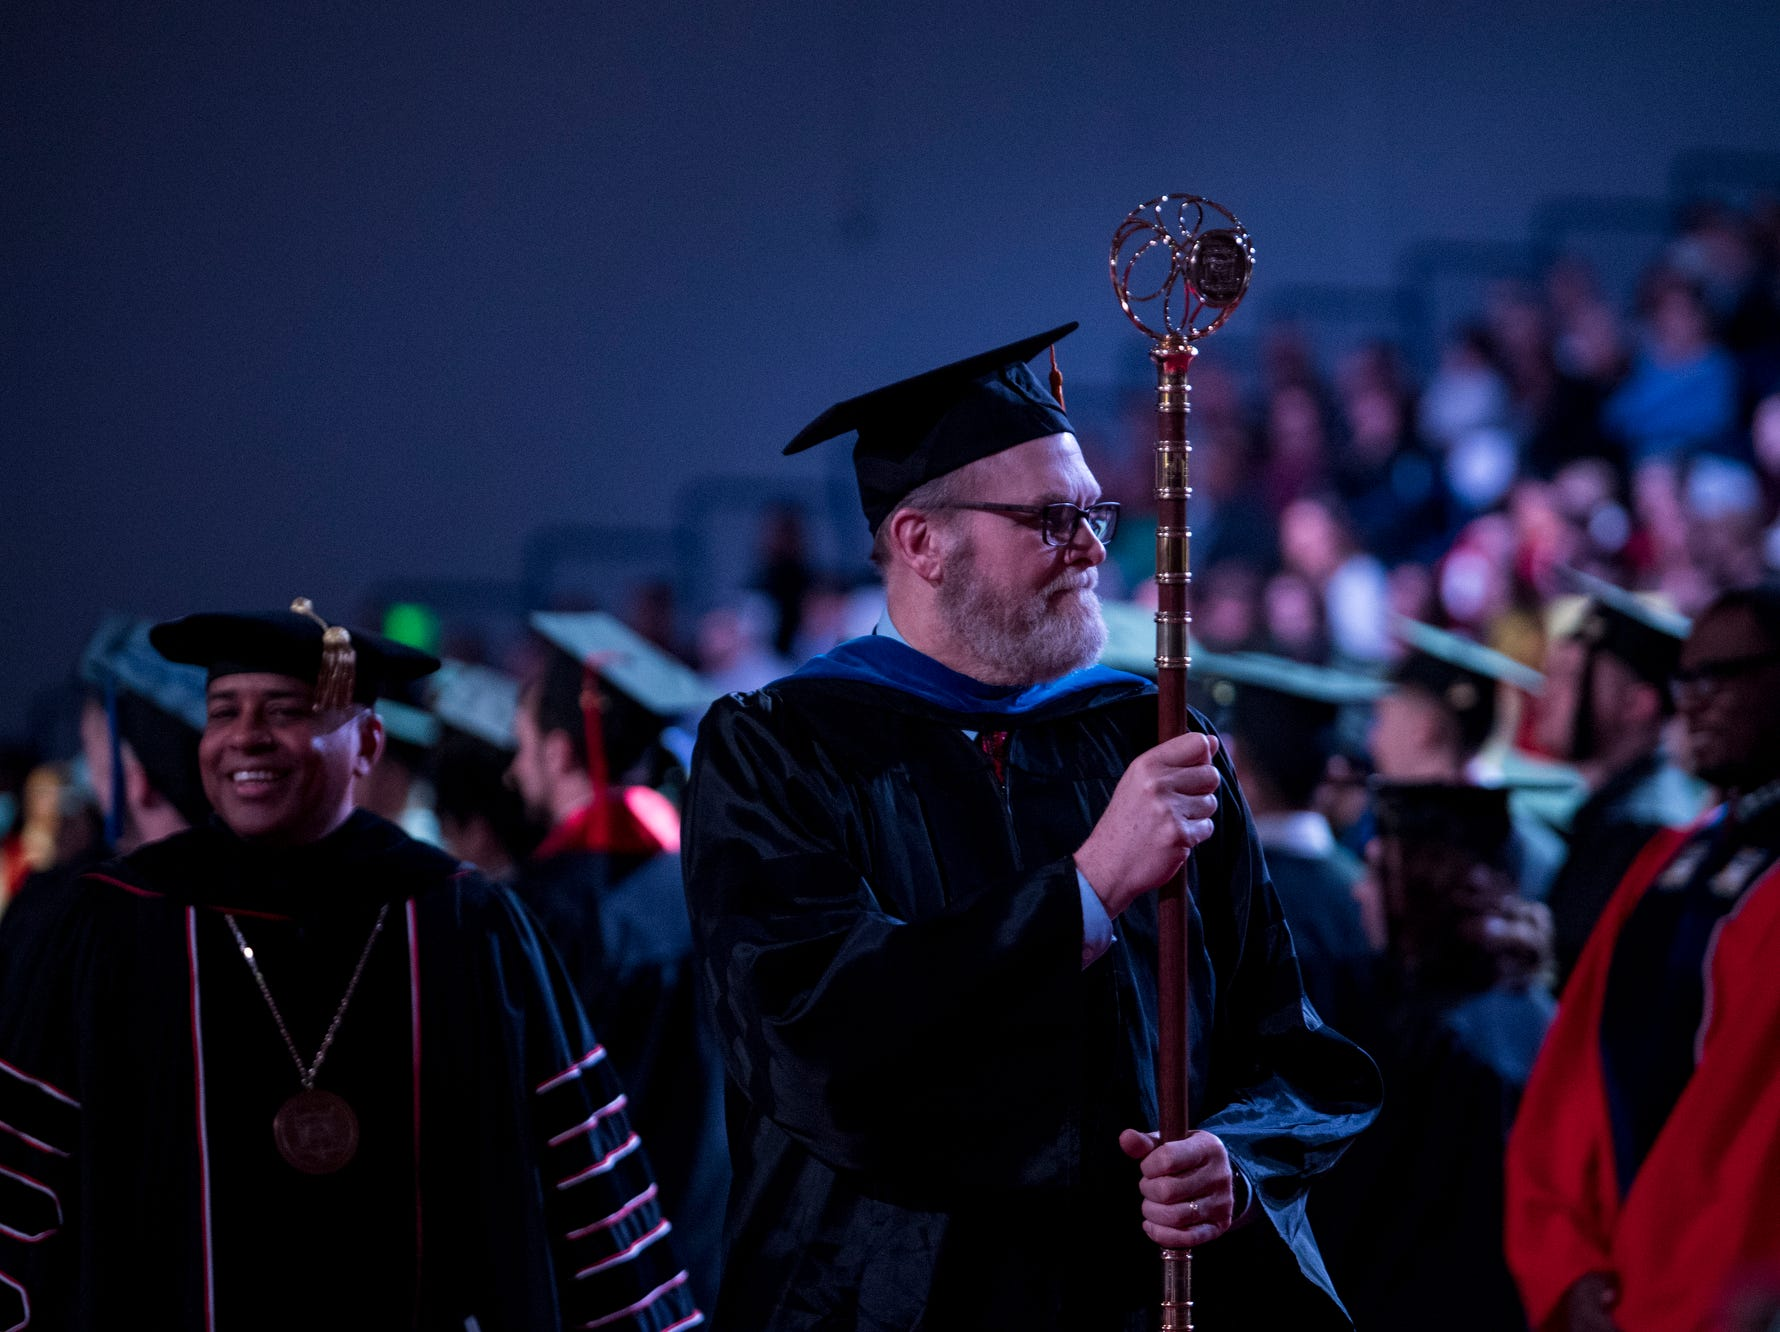 Grand Marshall Ernest H. Hall, Jr., Professor of Management, leads the recessional following the University of Southern Indiana's fall commencement ceremony for the College of Liberal Arts and the Romain College of Business at the school's Physical Activities Center in Evansville, Ind., Saturday, Dec. 8, 2018.